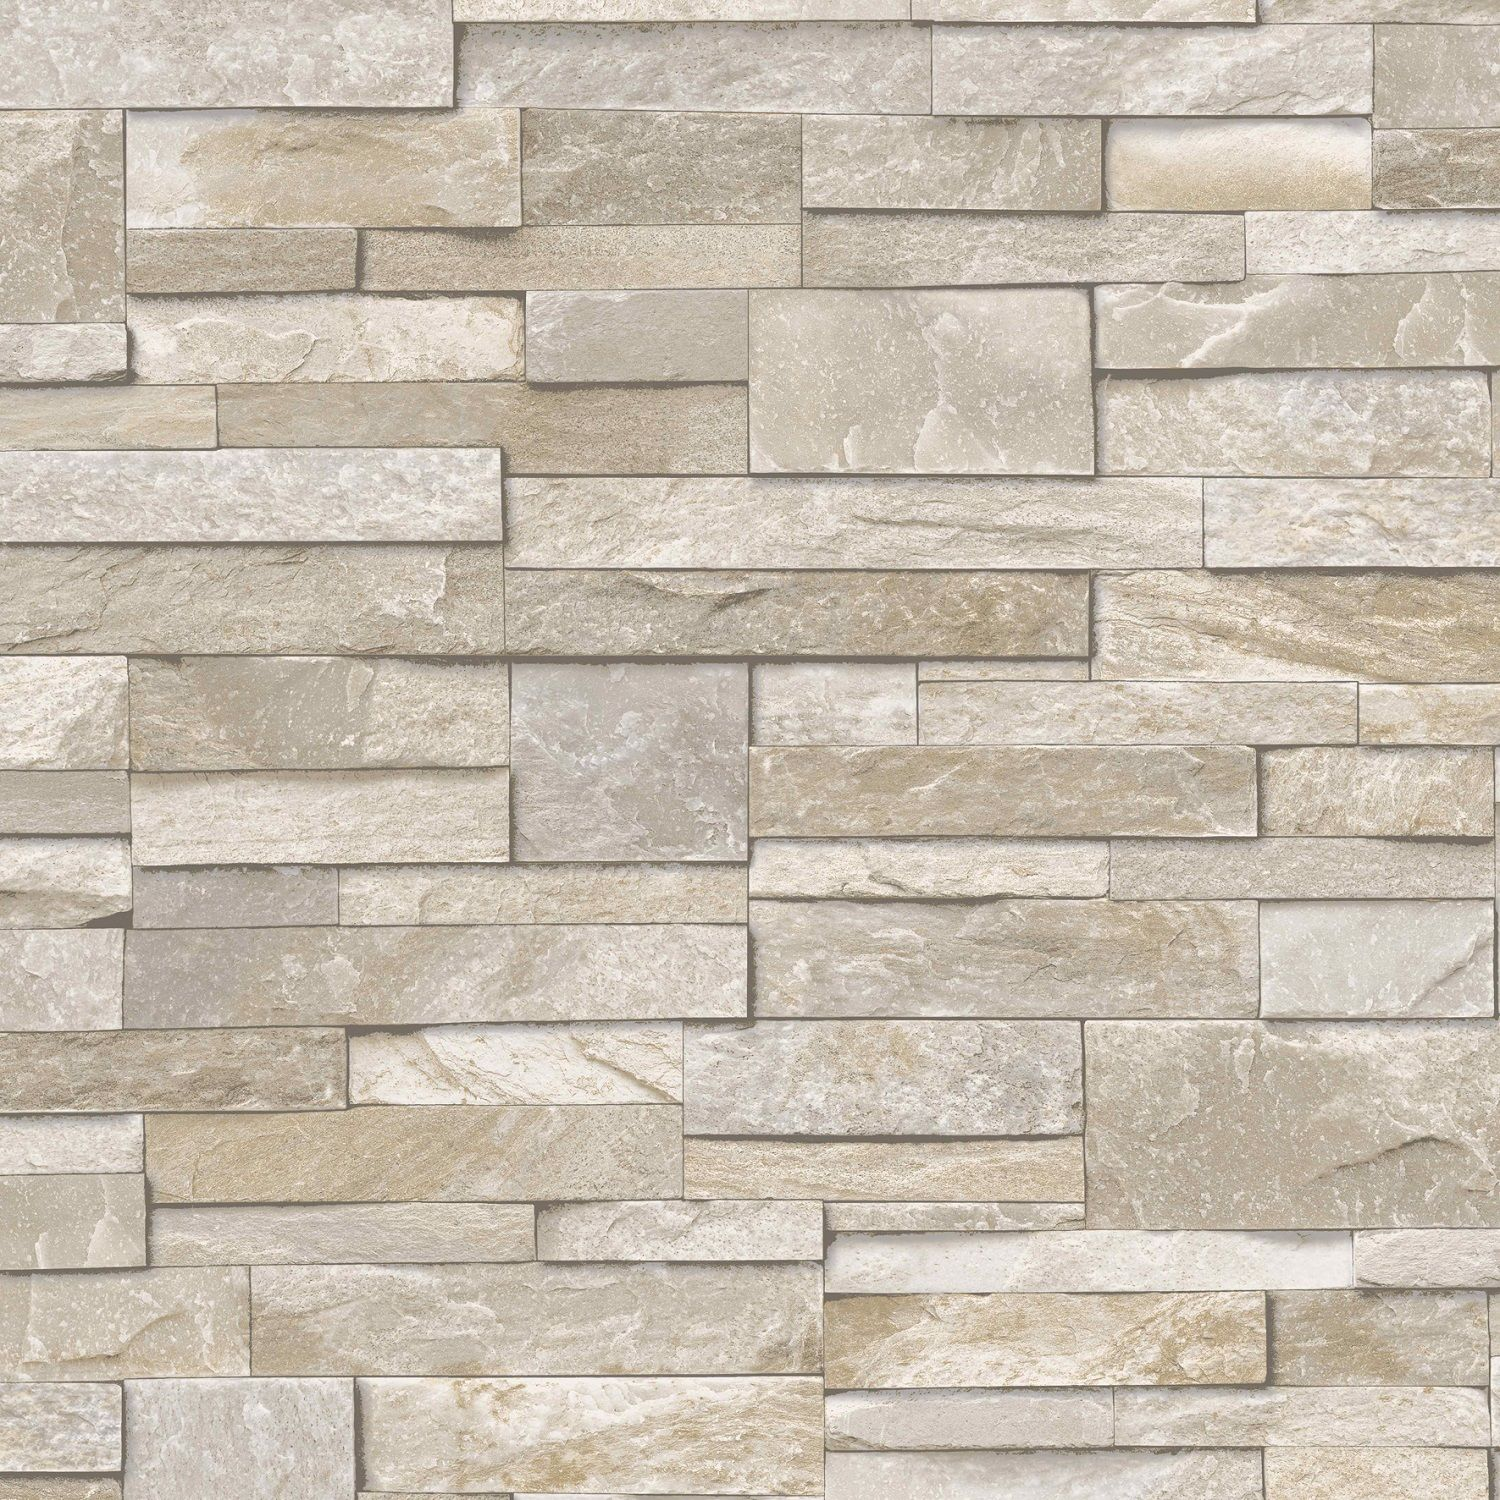 3d Effect Stone Brick Wall Textured Vinyl Wallpaper Self Adhesive 3d Slate Stone Brick Effect Wallpaper Washable Vinyl